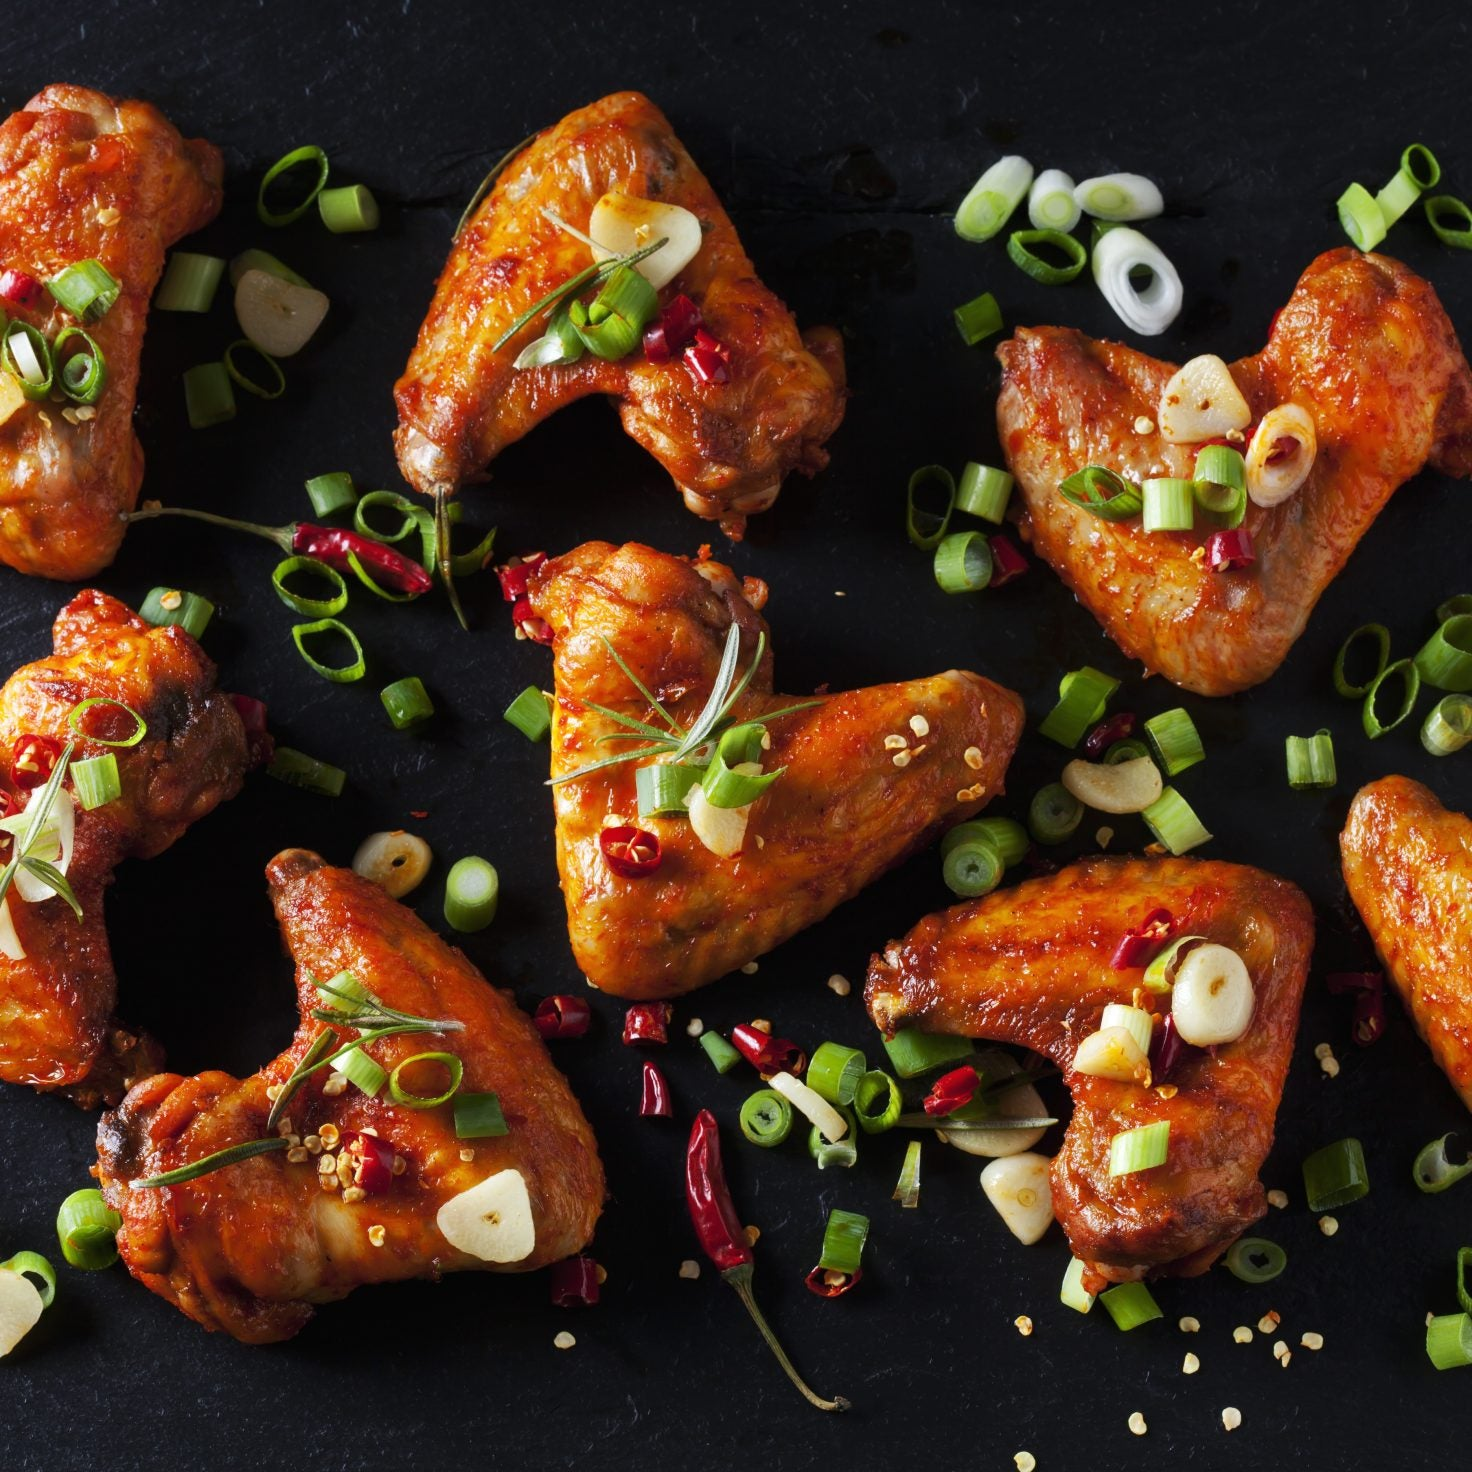 Wing Recipes You Don't Have To Wait For The Super Bowl To Try